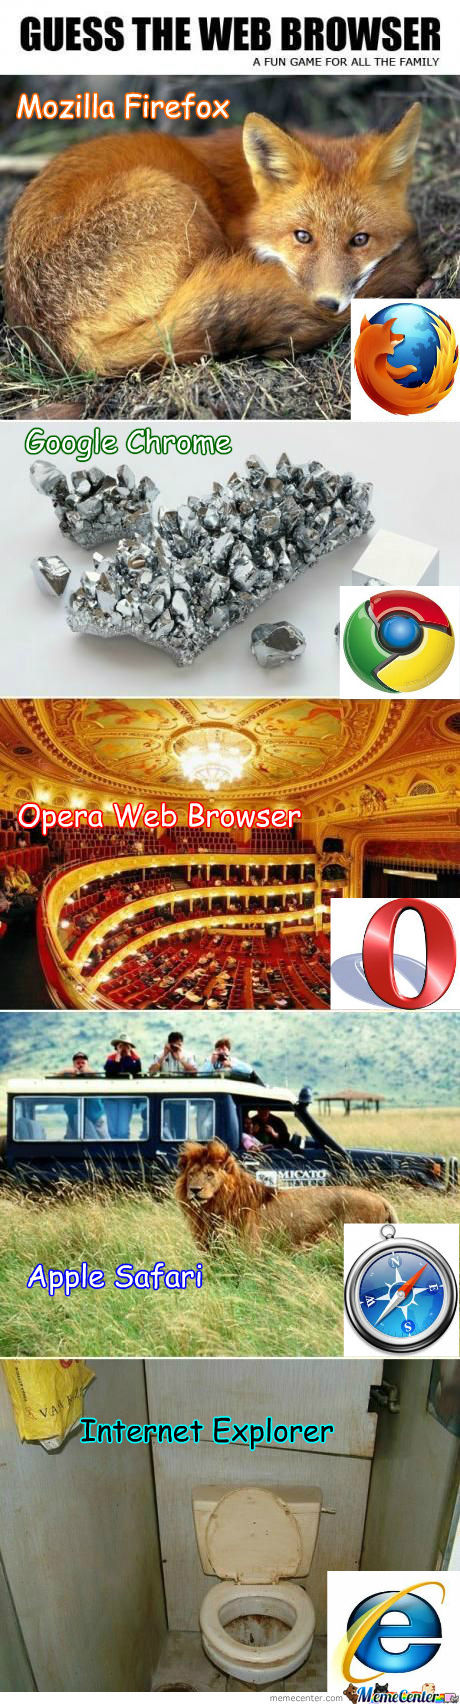 [RMX] Name The Browsers